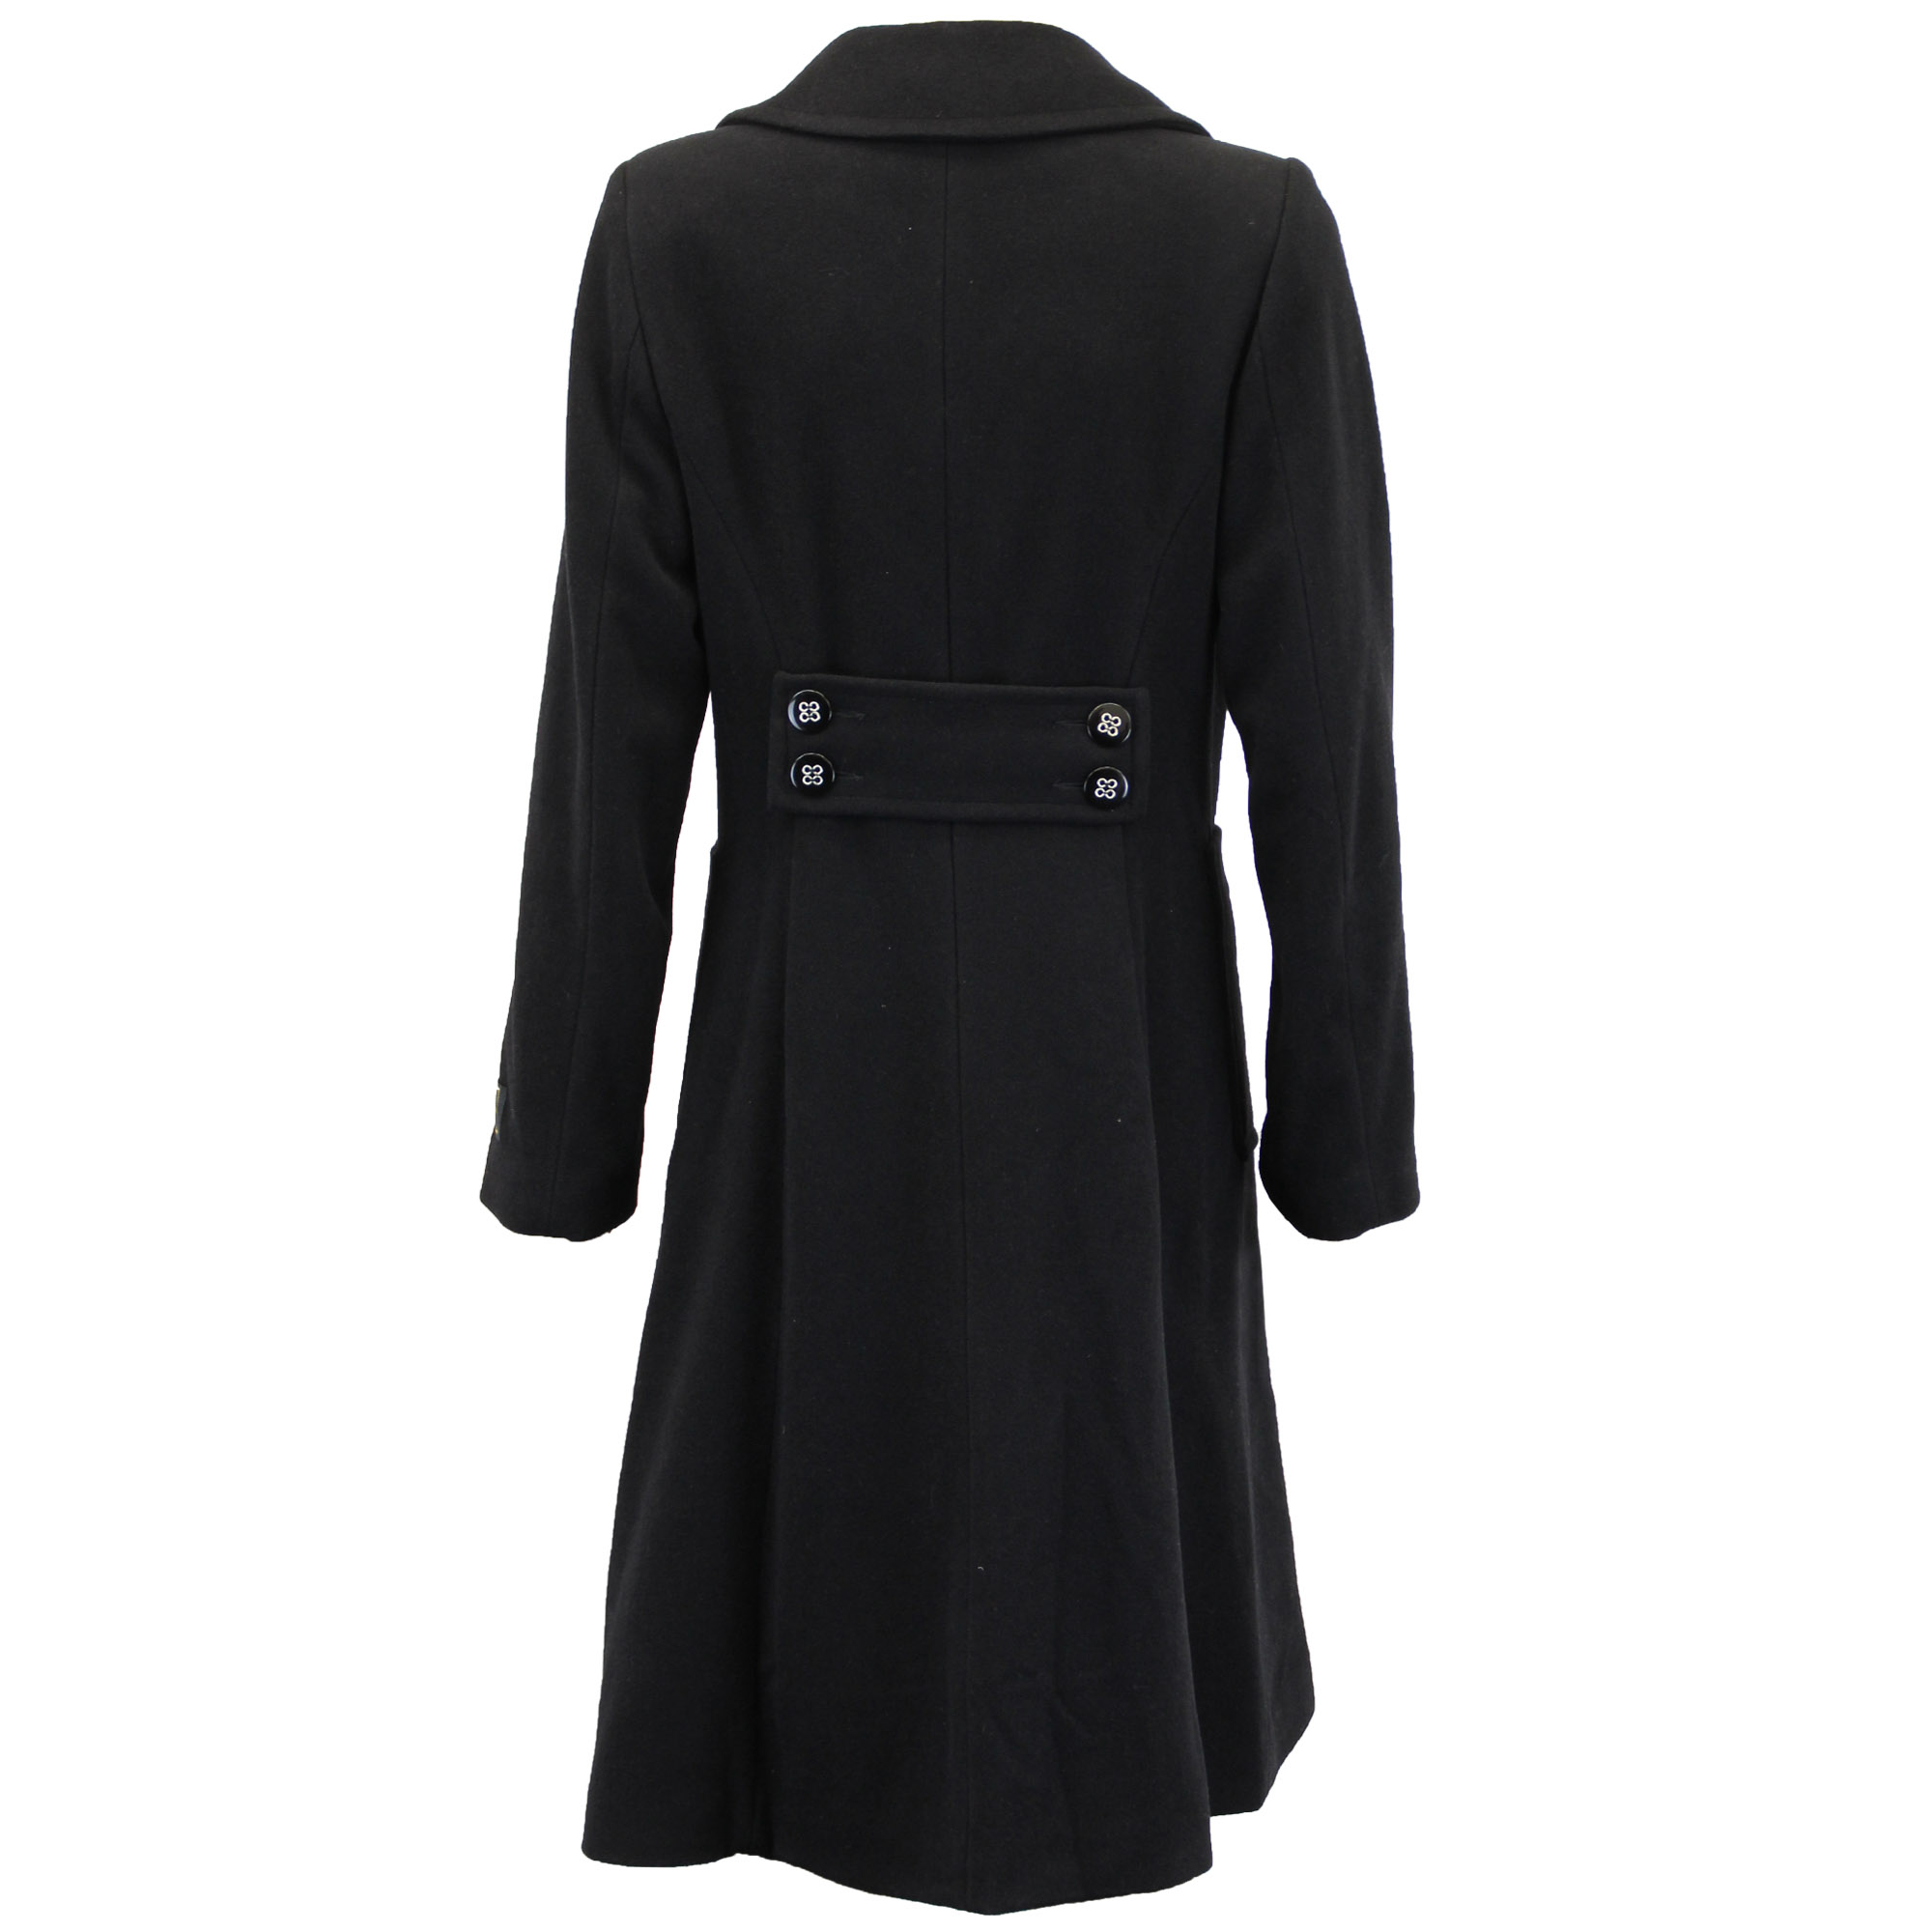 Ladies Wool Cashmere Coat Womens Jacket Double Breasted